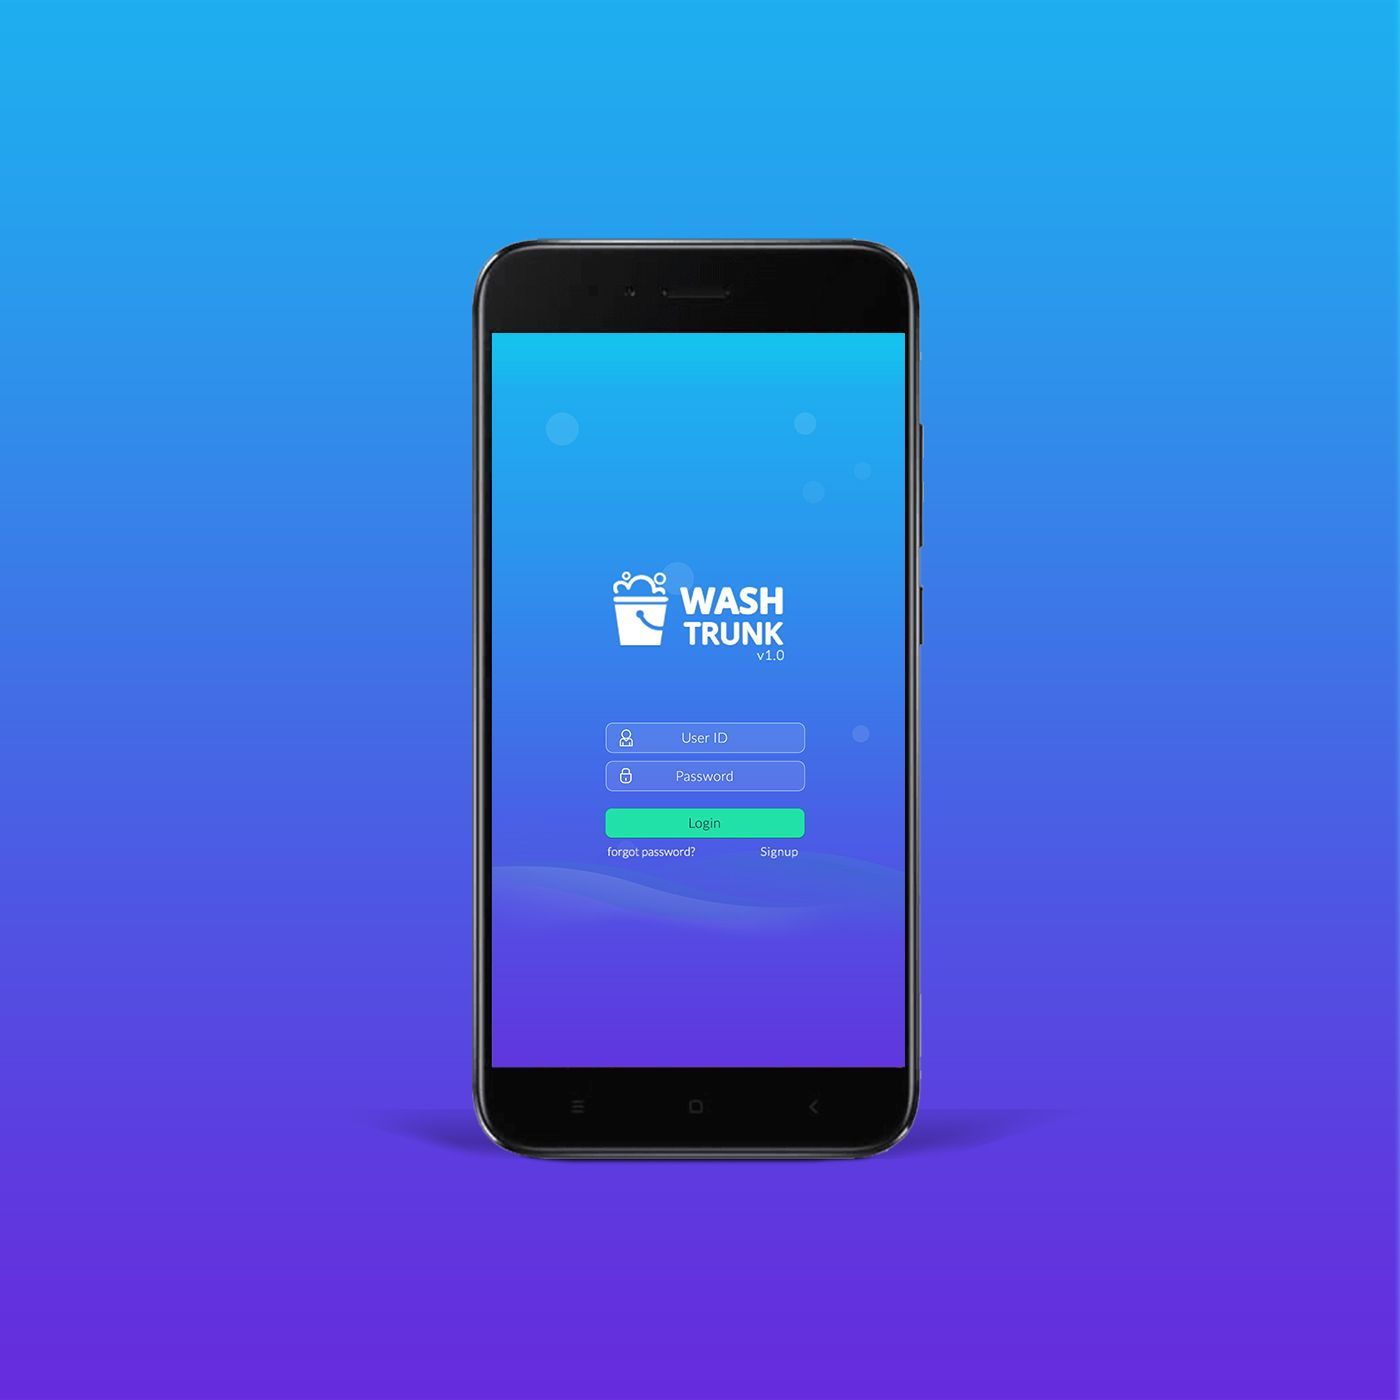 """Check out my Behance project """"Wash Trunk Android App UX"""